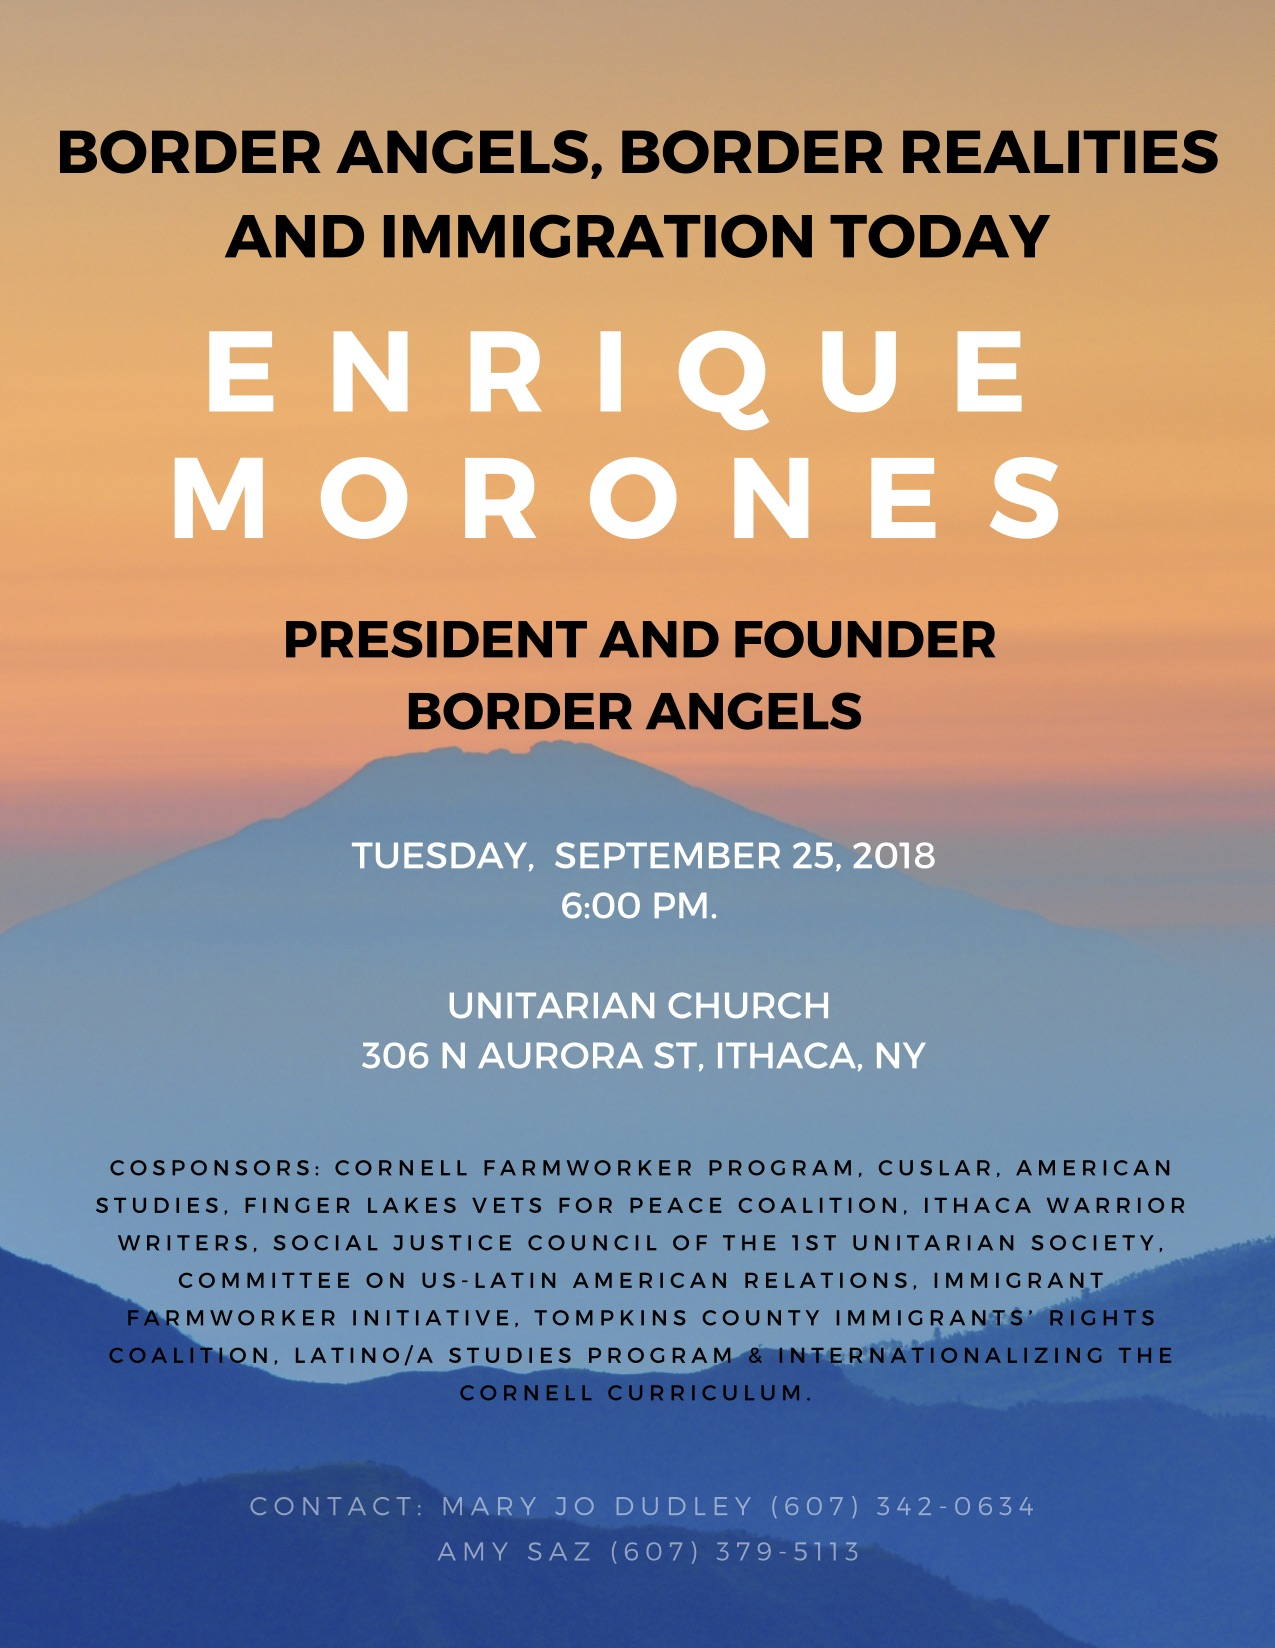 Border Angels founder & director, Enrique Morones, to give lecture